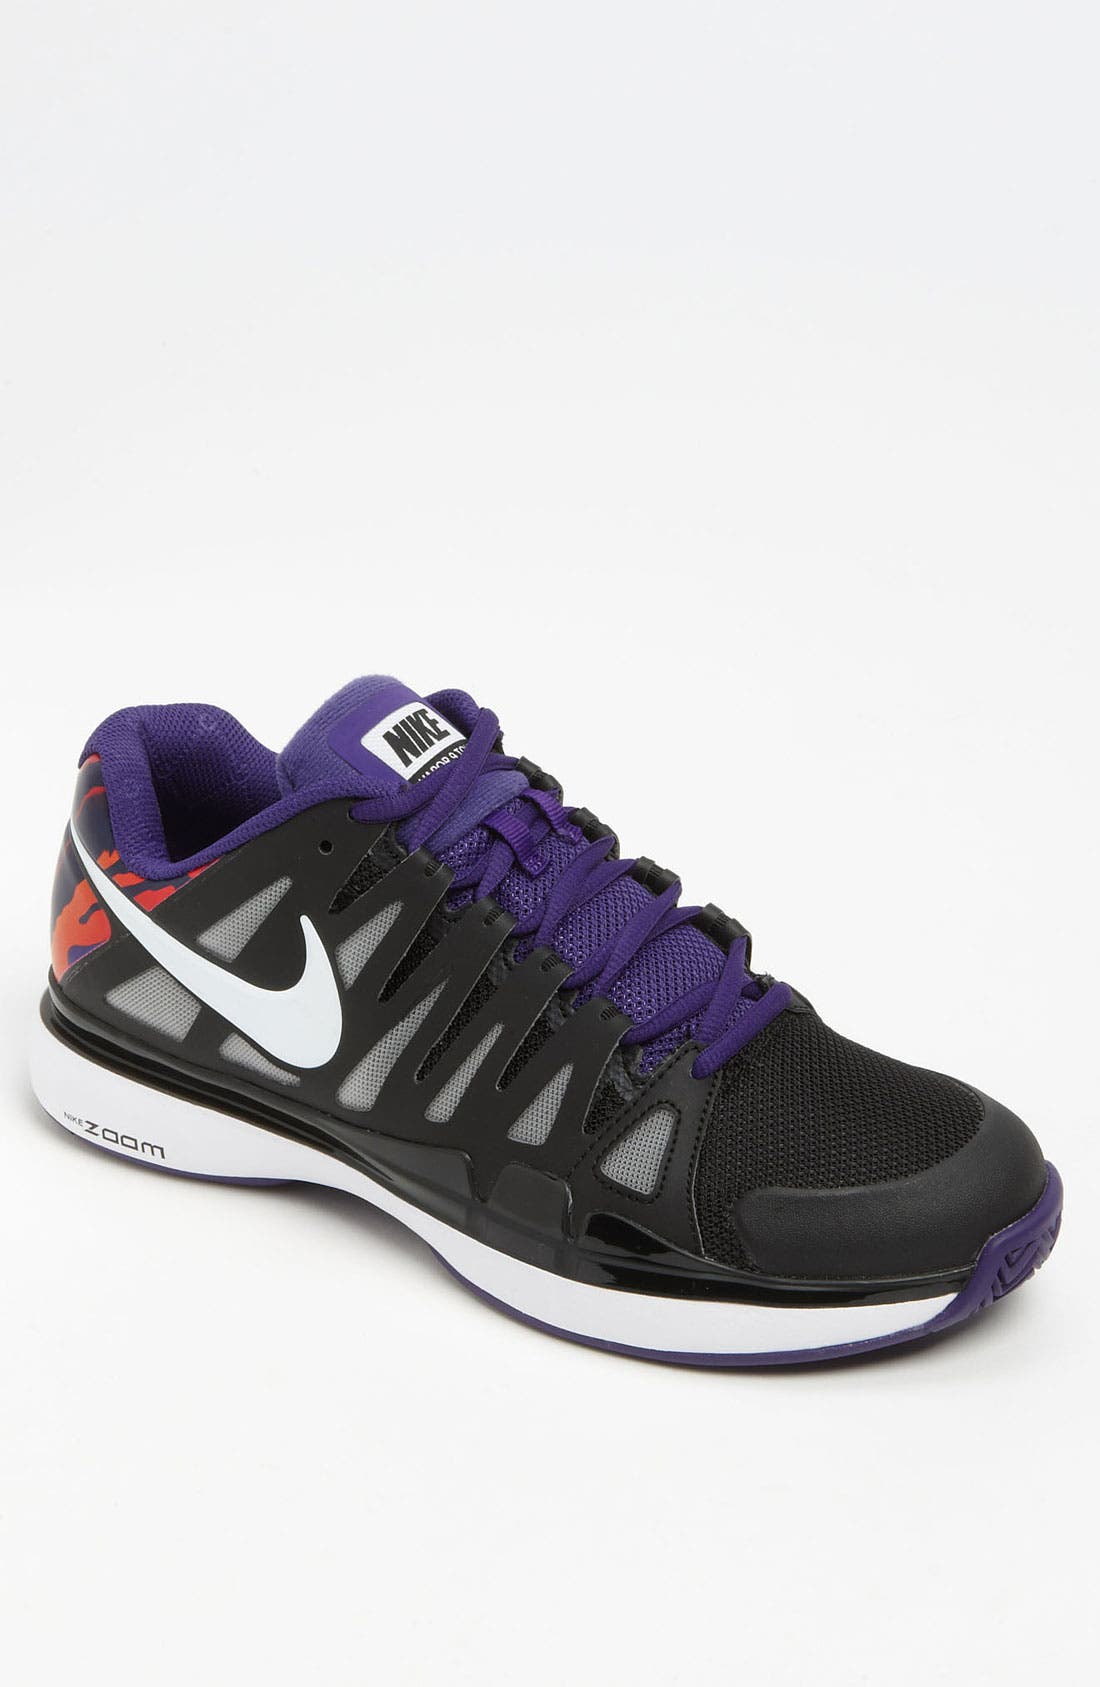 Alternate Image 1 Selected - Nike 'Zoom Vapor 9 Tour' Tennis Shoe (Men)